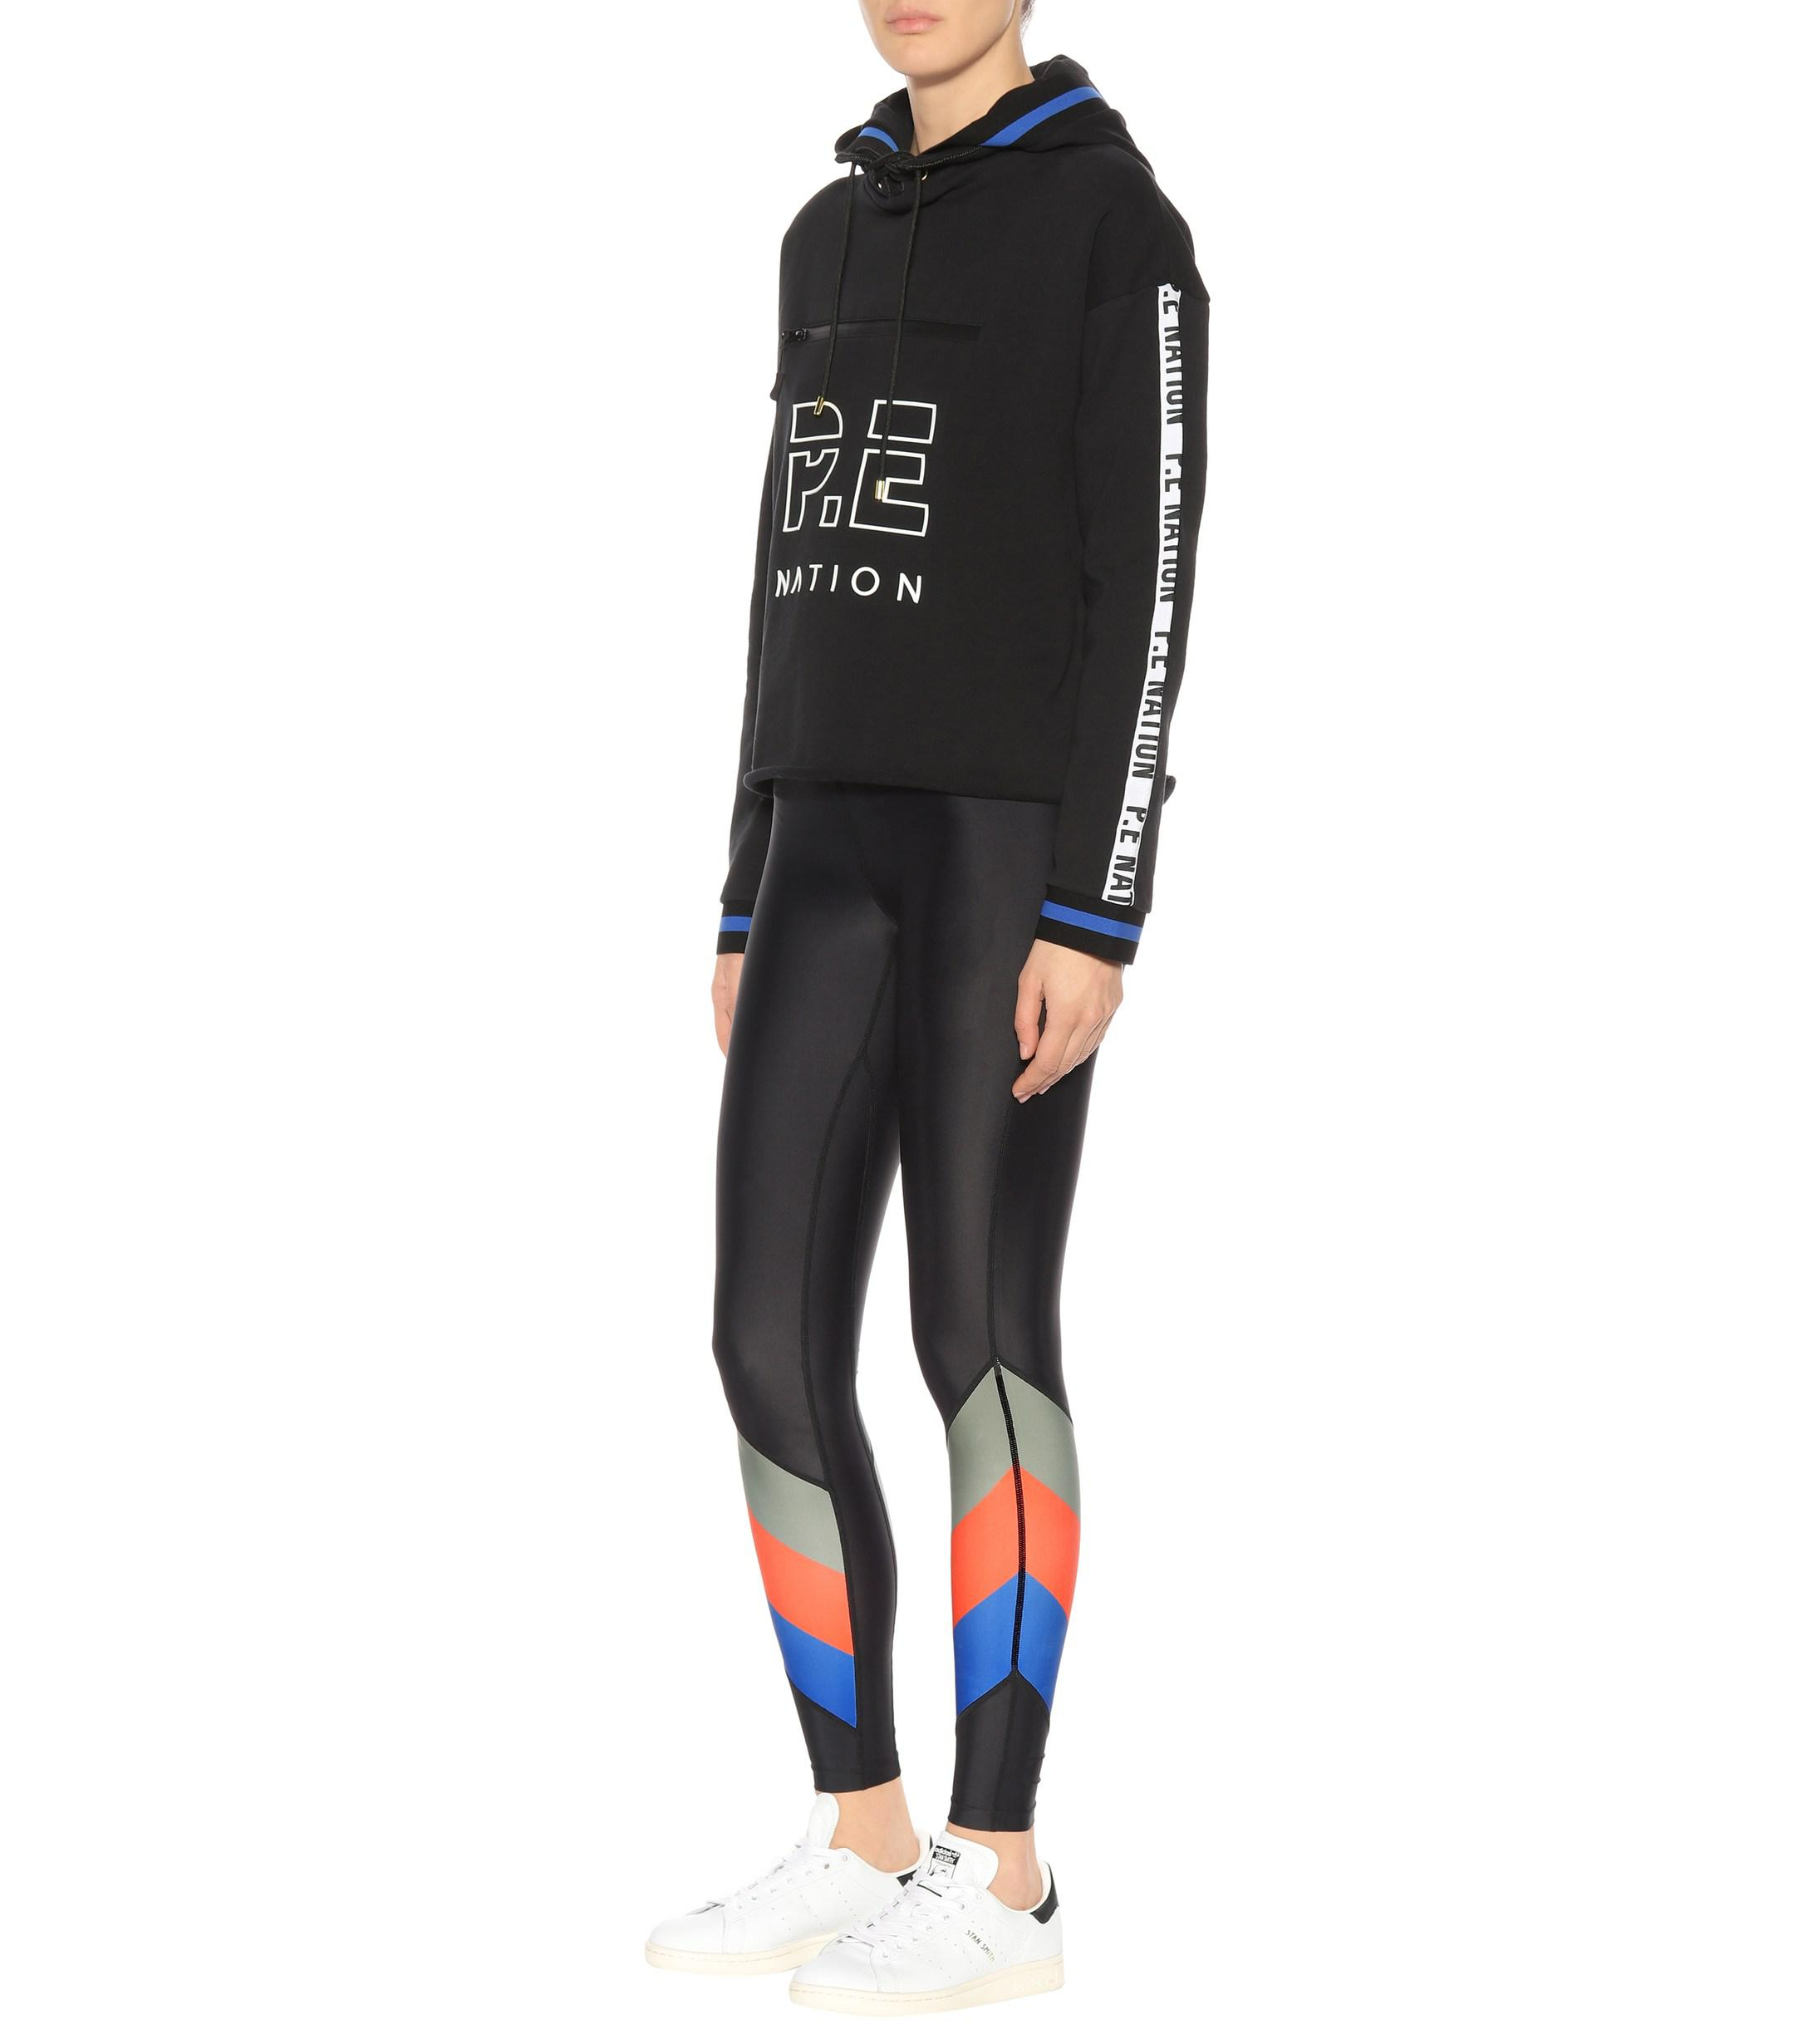 15ee524026896 P.E Nation - Multicolor First Gen Printed leggings - Lyst. View fullscreen